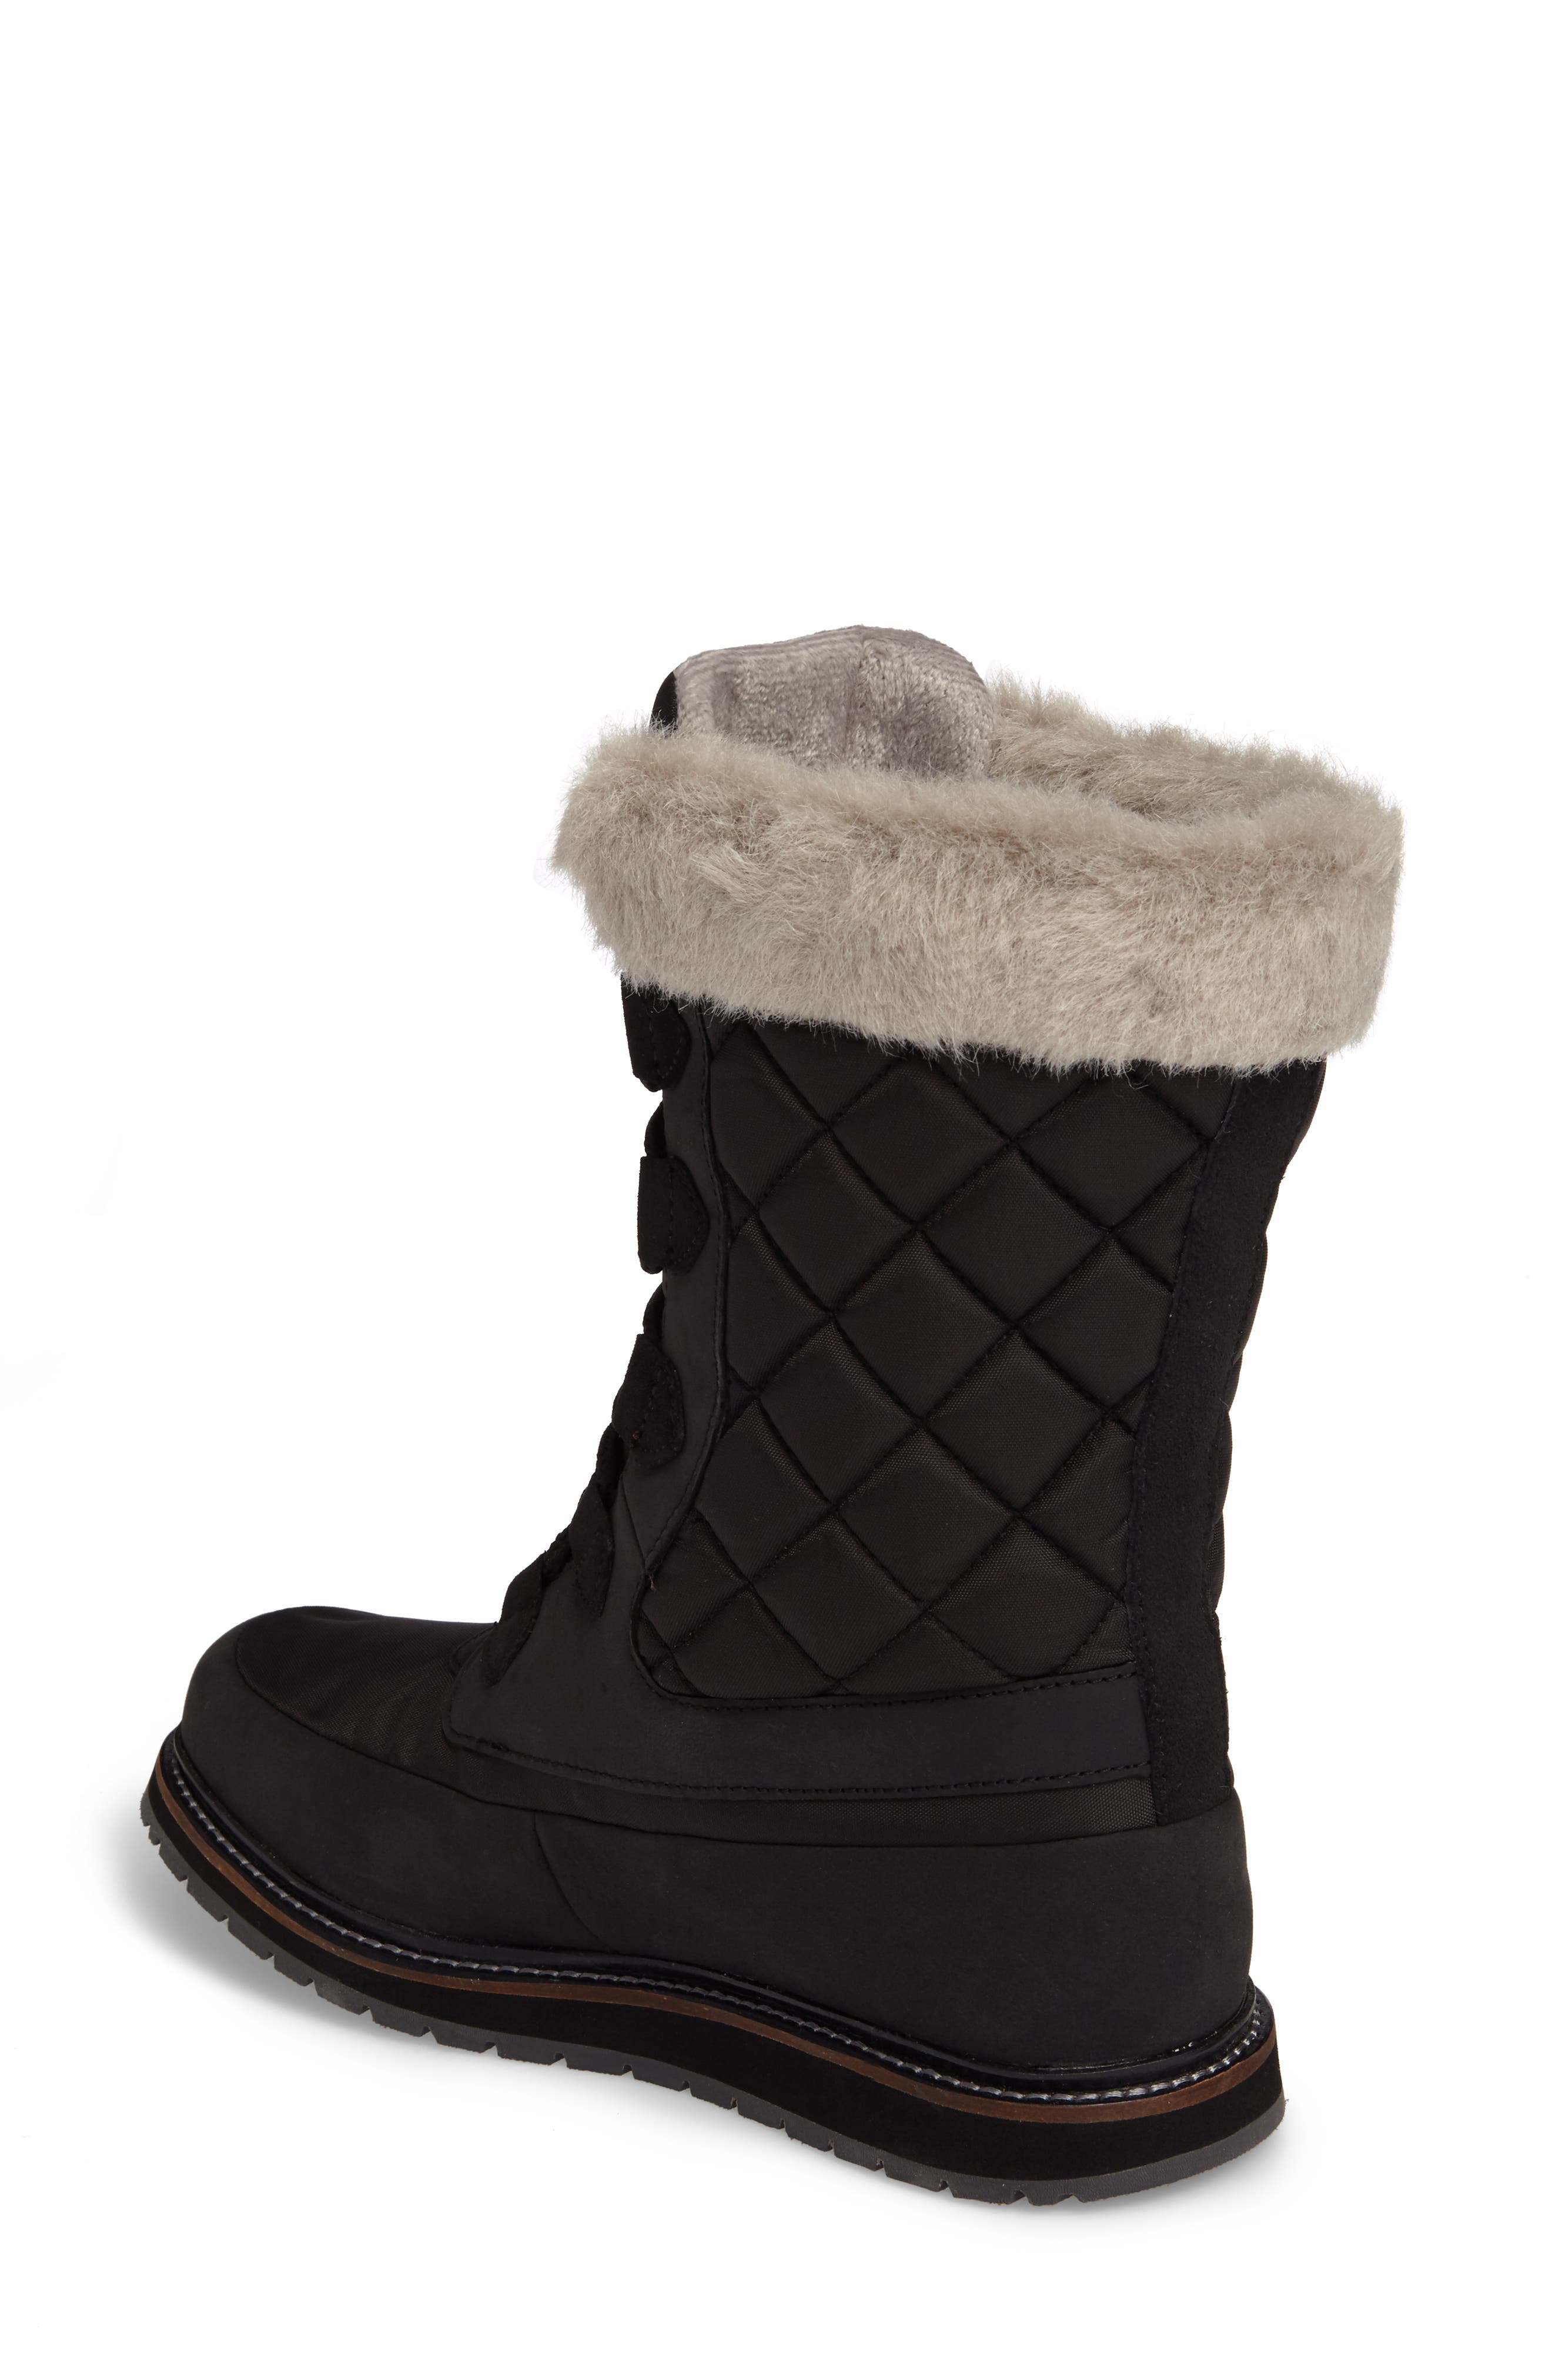 Arosa Waterproof Boot with Faux Fur Trim,                             Alternate thumbnail 2, color,                             001